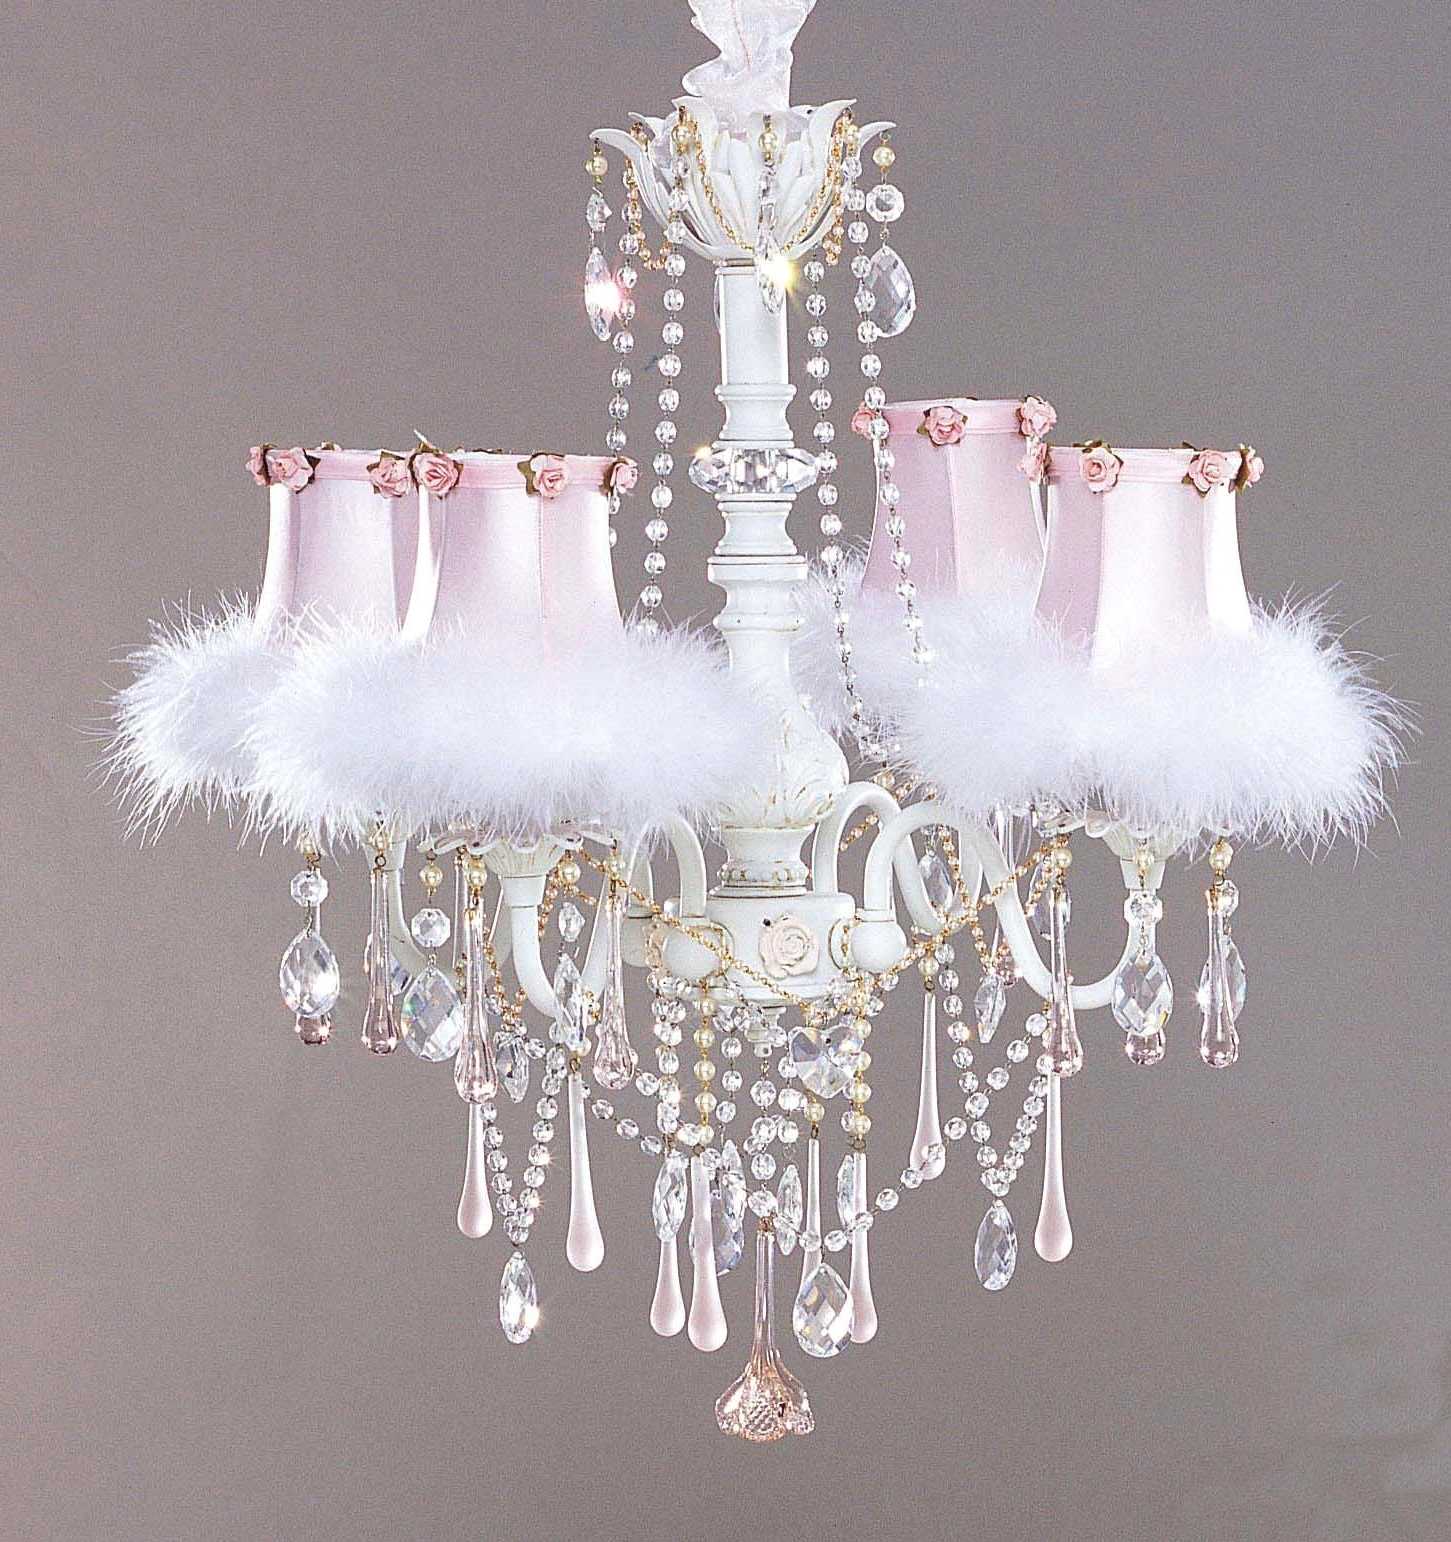 Favorite Chandeliers : Shabby Chic Chandelier Elegant Chandelier Small With Small Shabby Chic Chandelier (View 8 of 20)